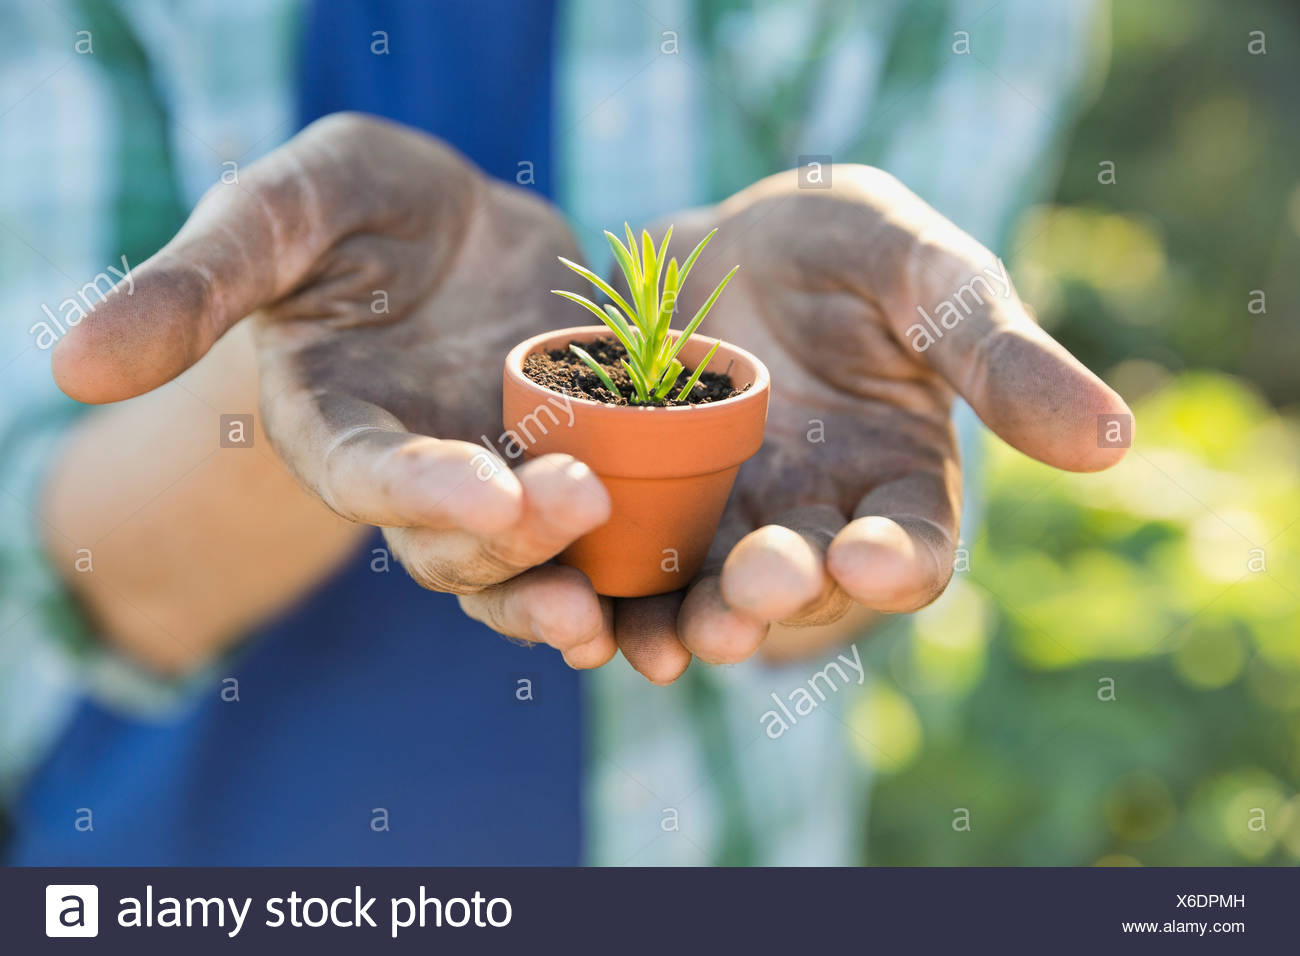 Man holding up tiny potted plant Photo Stock